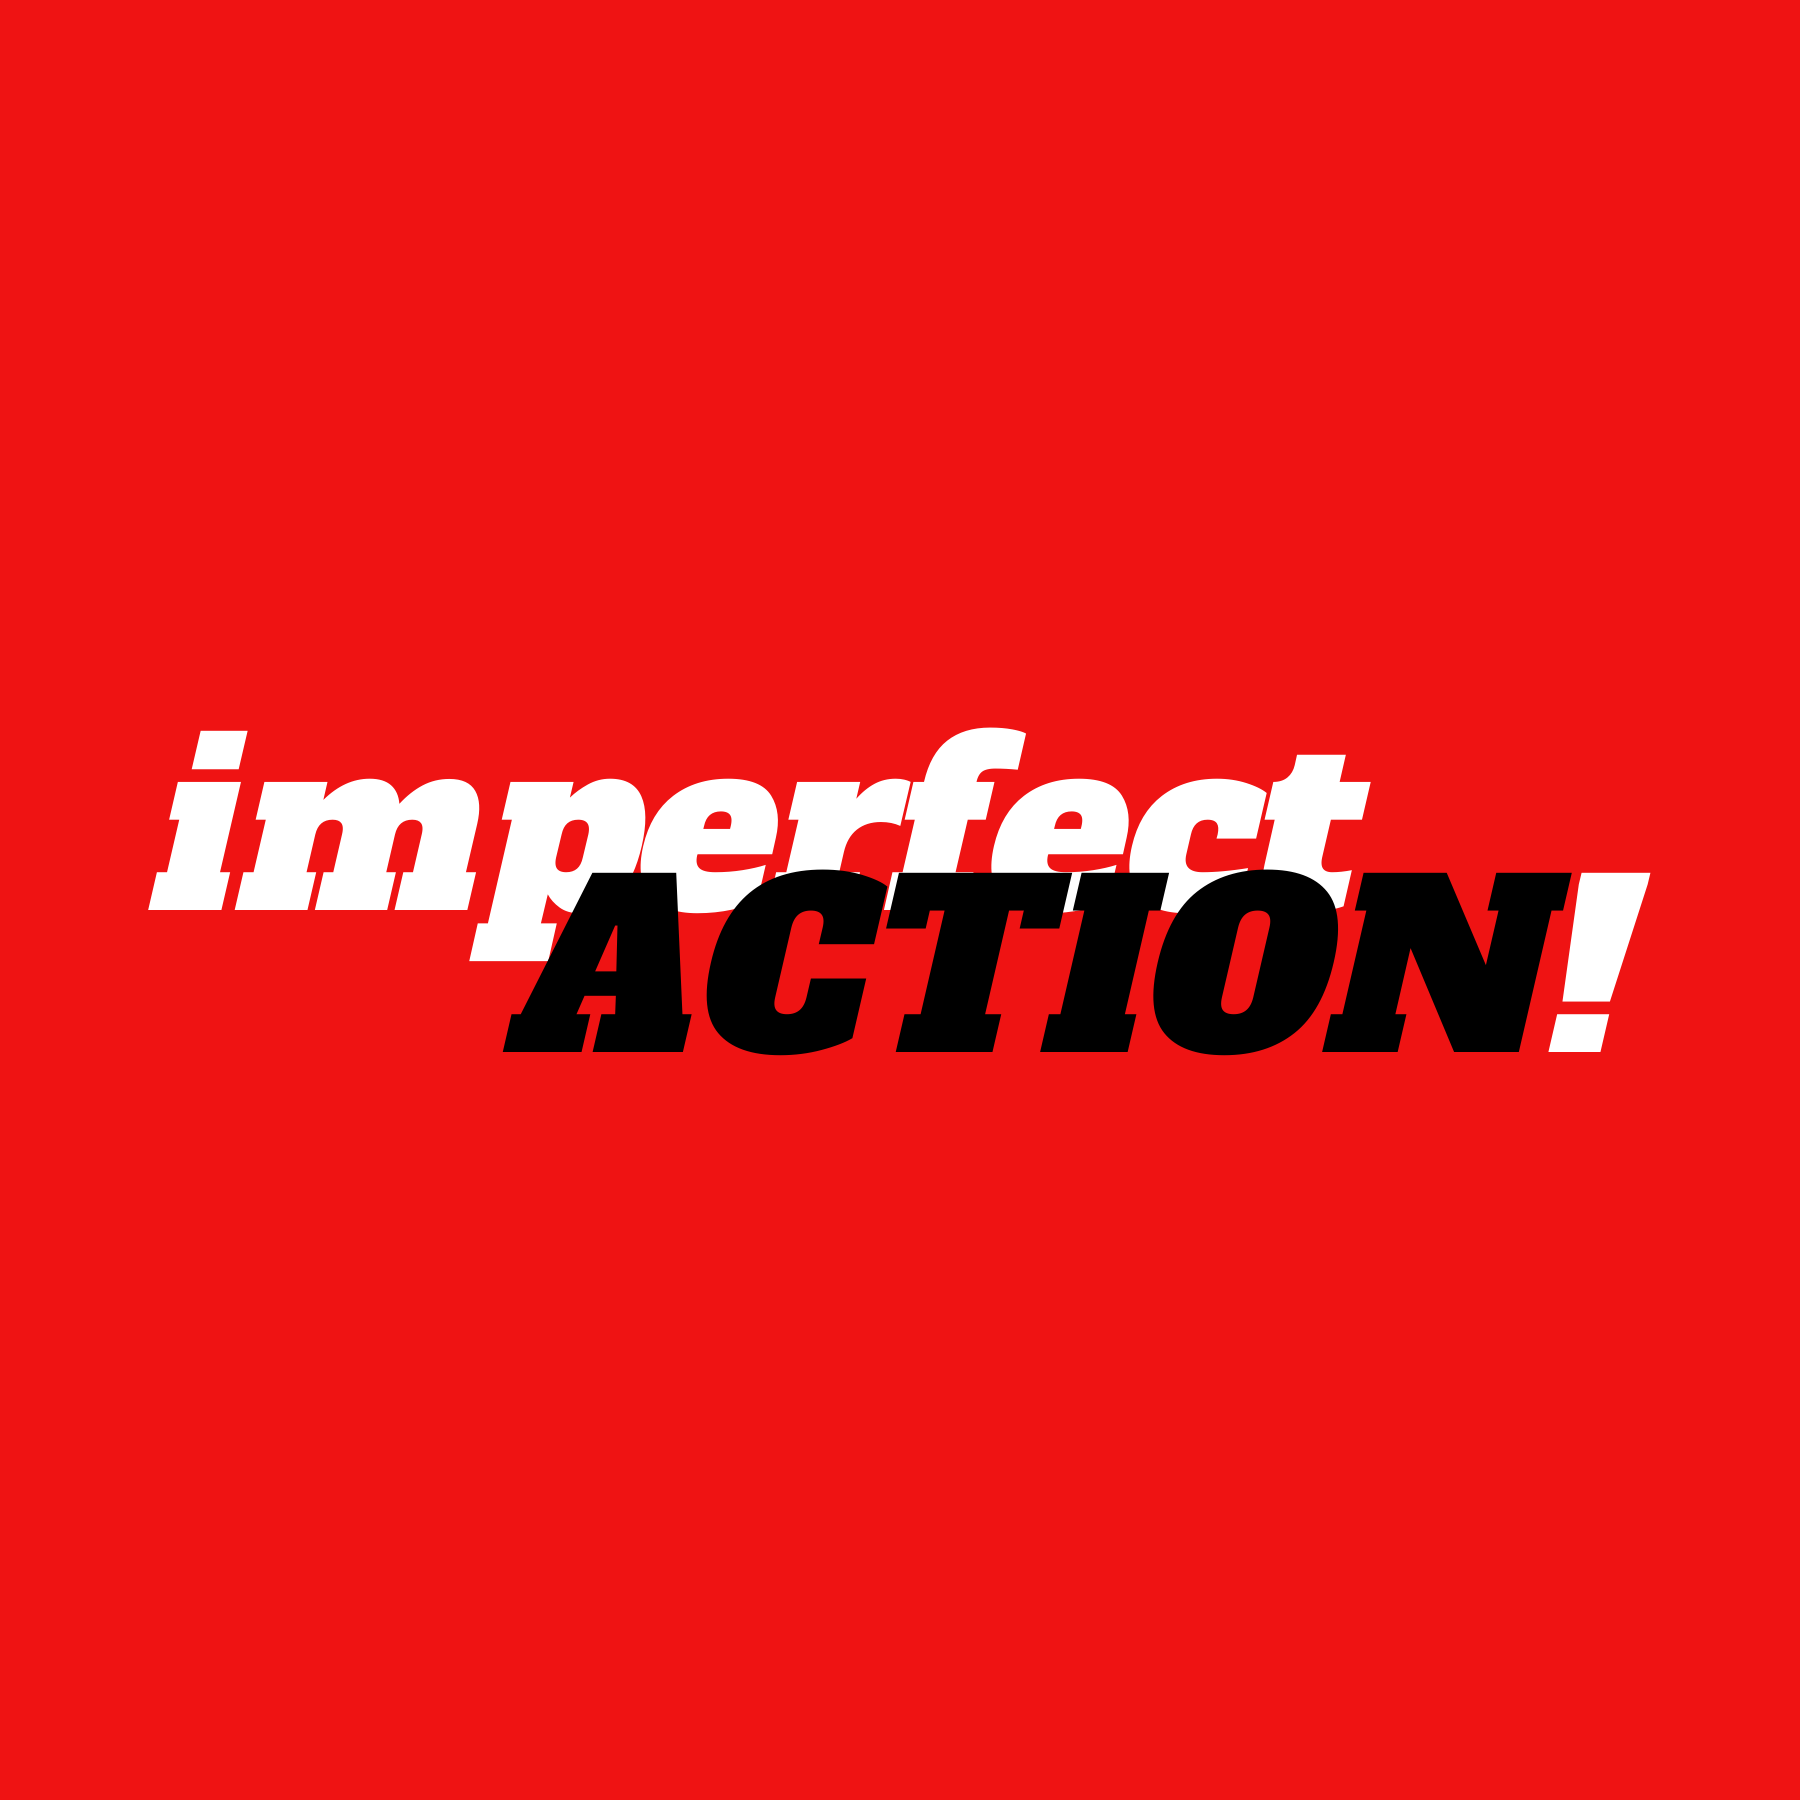 Imperfect Action